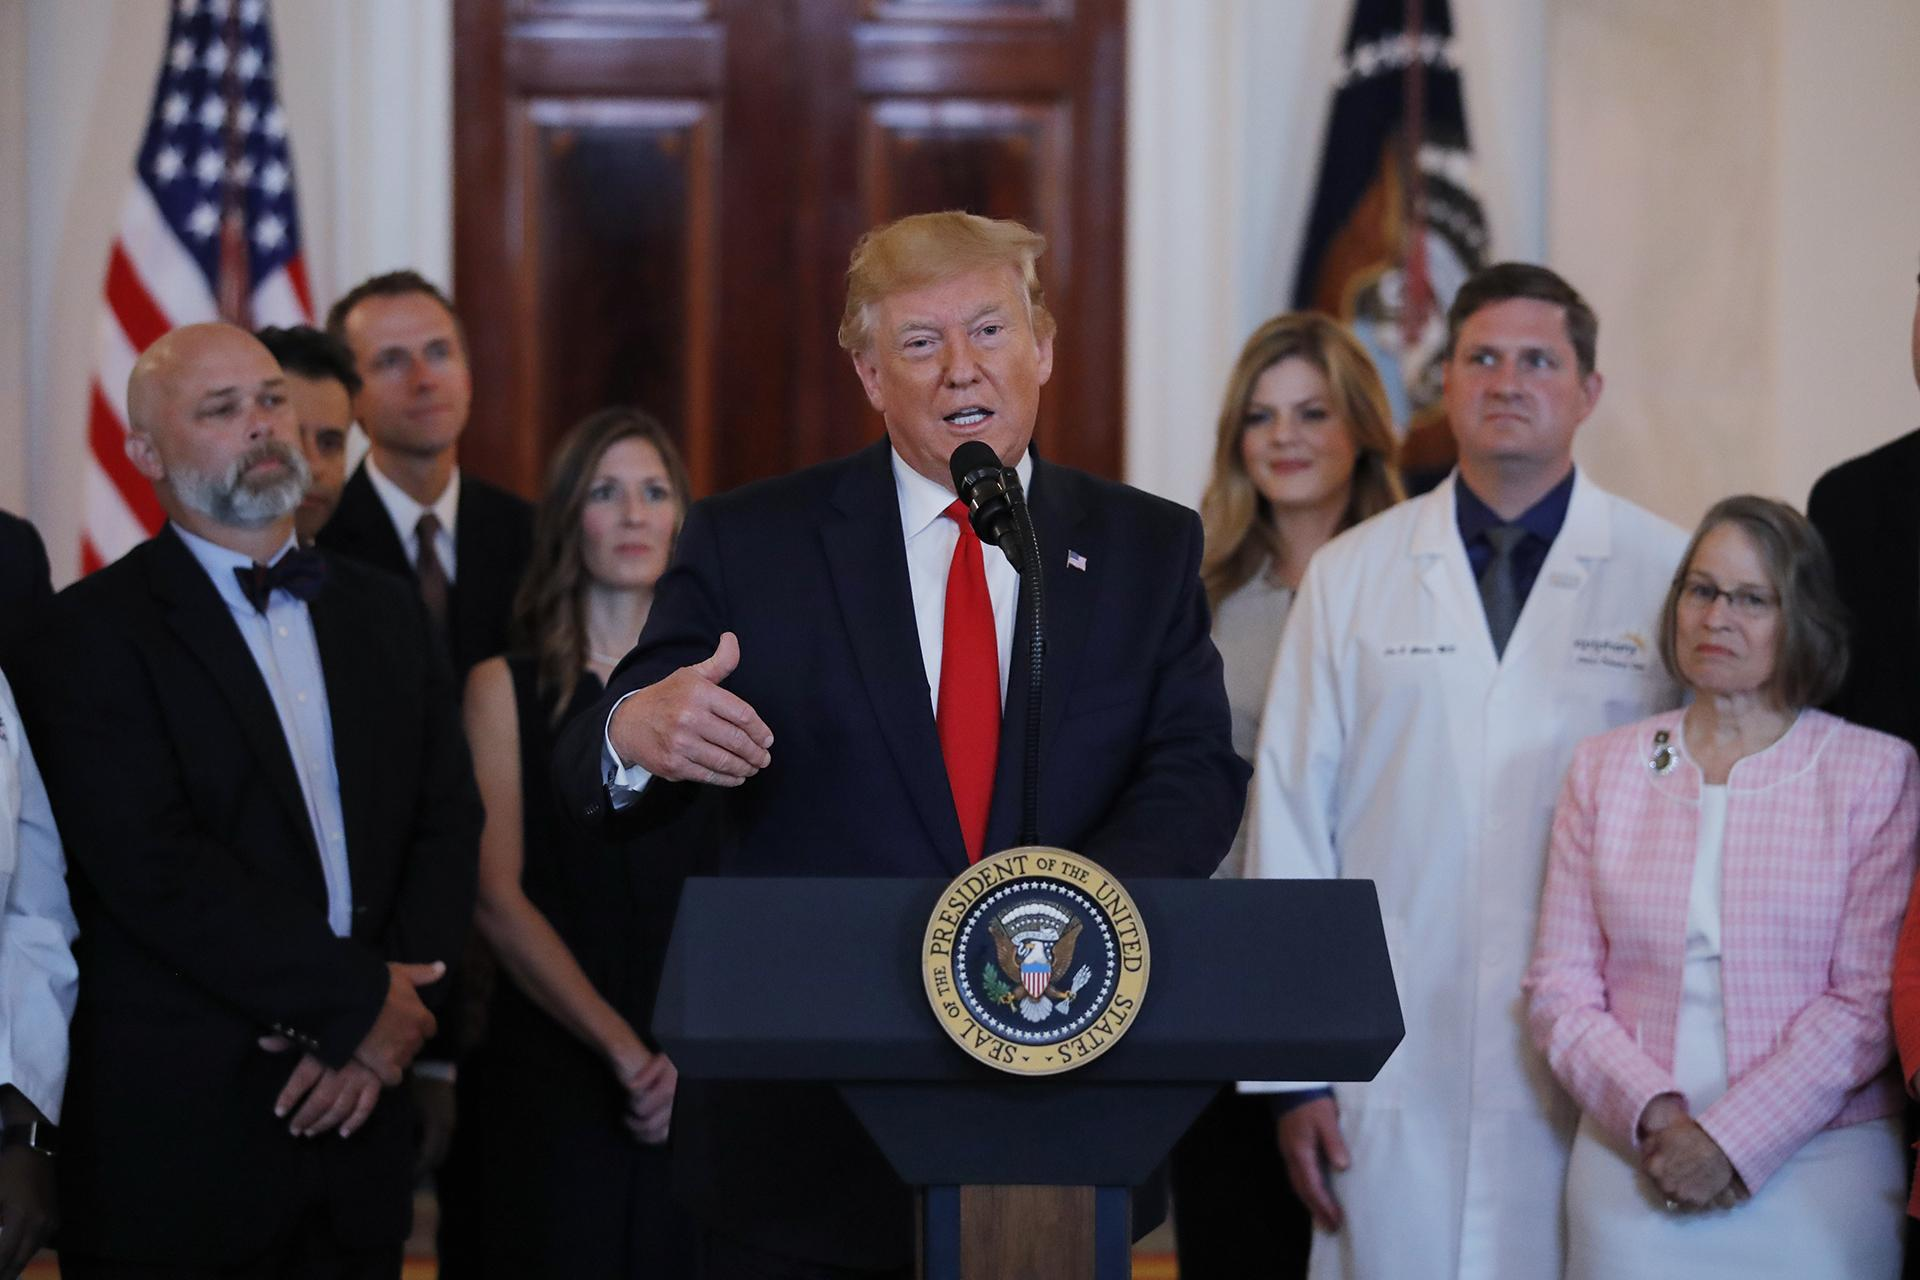 President Donald Trump speaks during a ceremony where he will sign an executive order that calls for upfront disclosure by hospitals of actual prices for common tests and procedures to keep costs down, at the White House in Washington, Monday, June 24, 2019. (AP Photo / Carolyn Kaster)